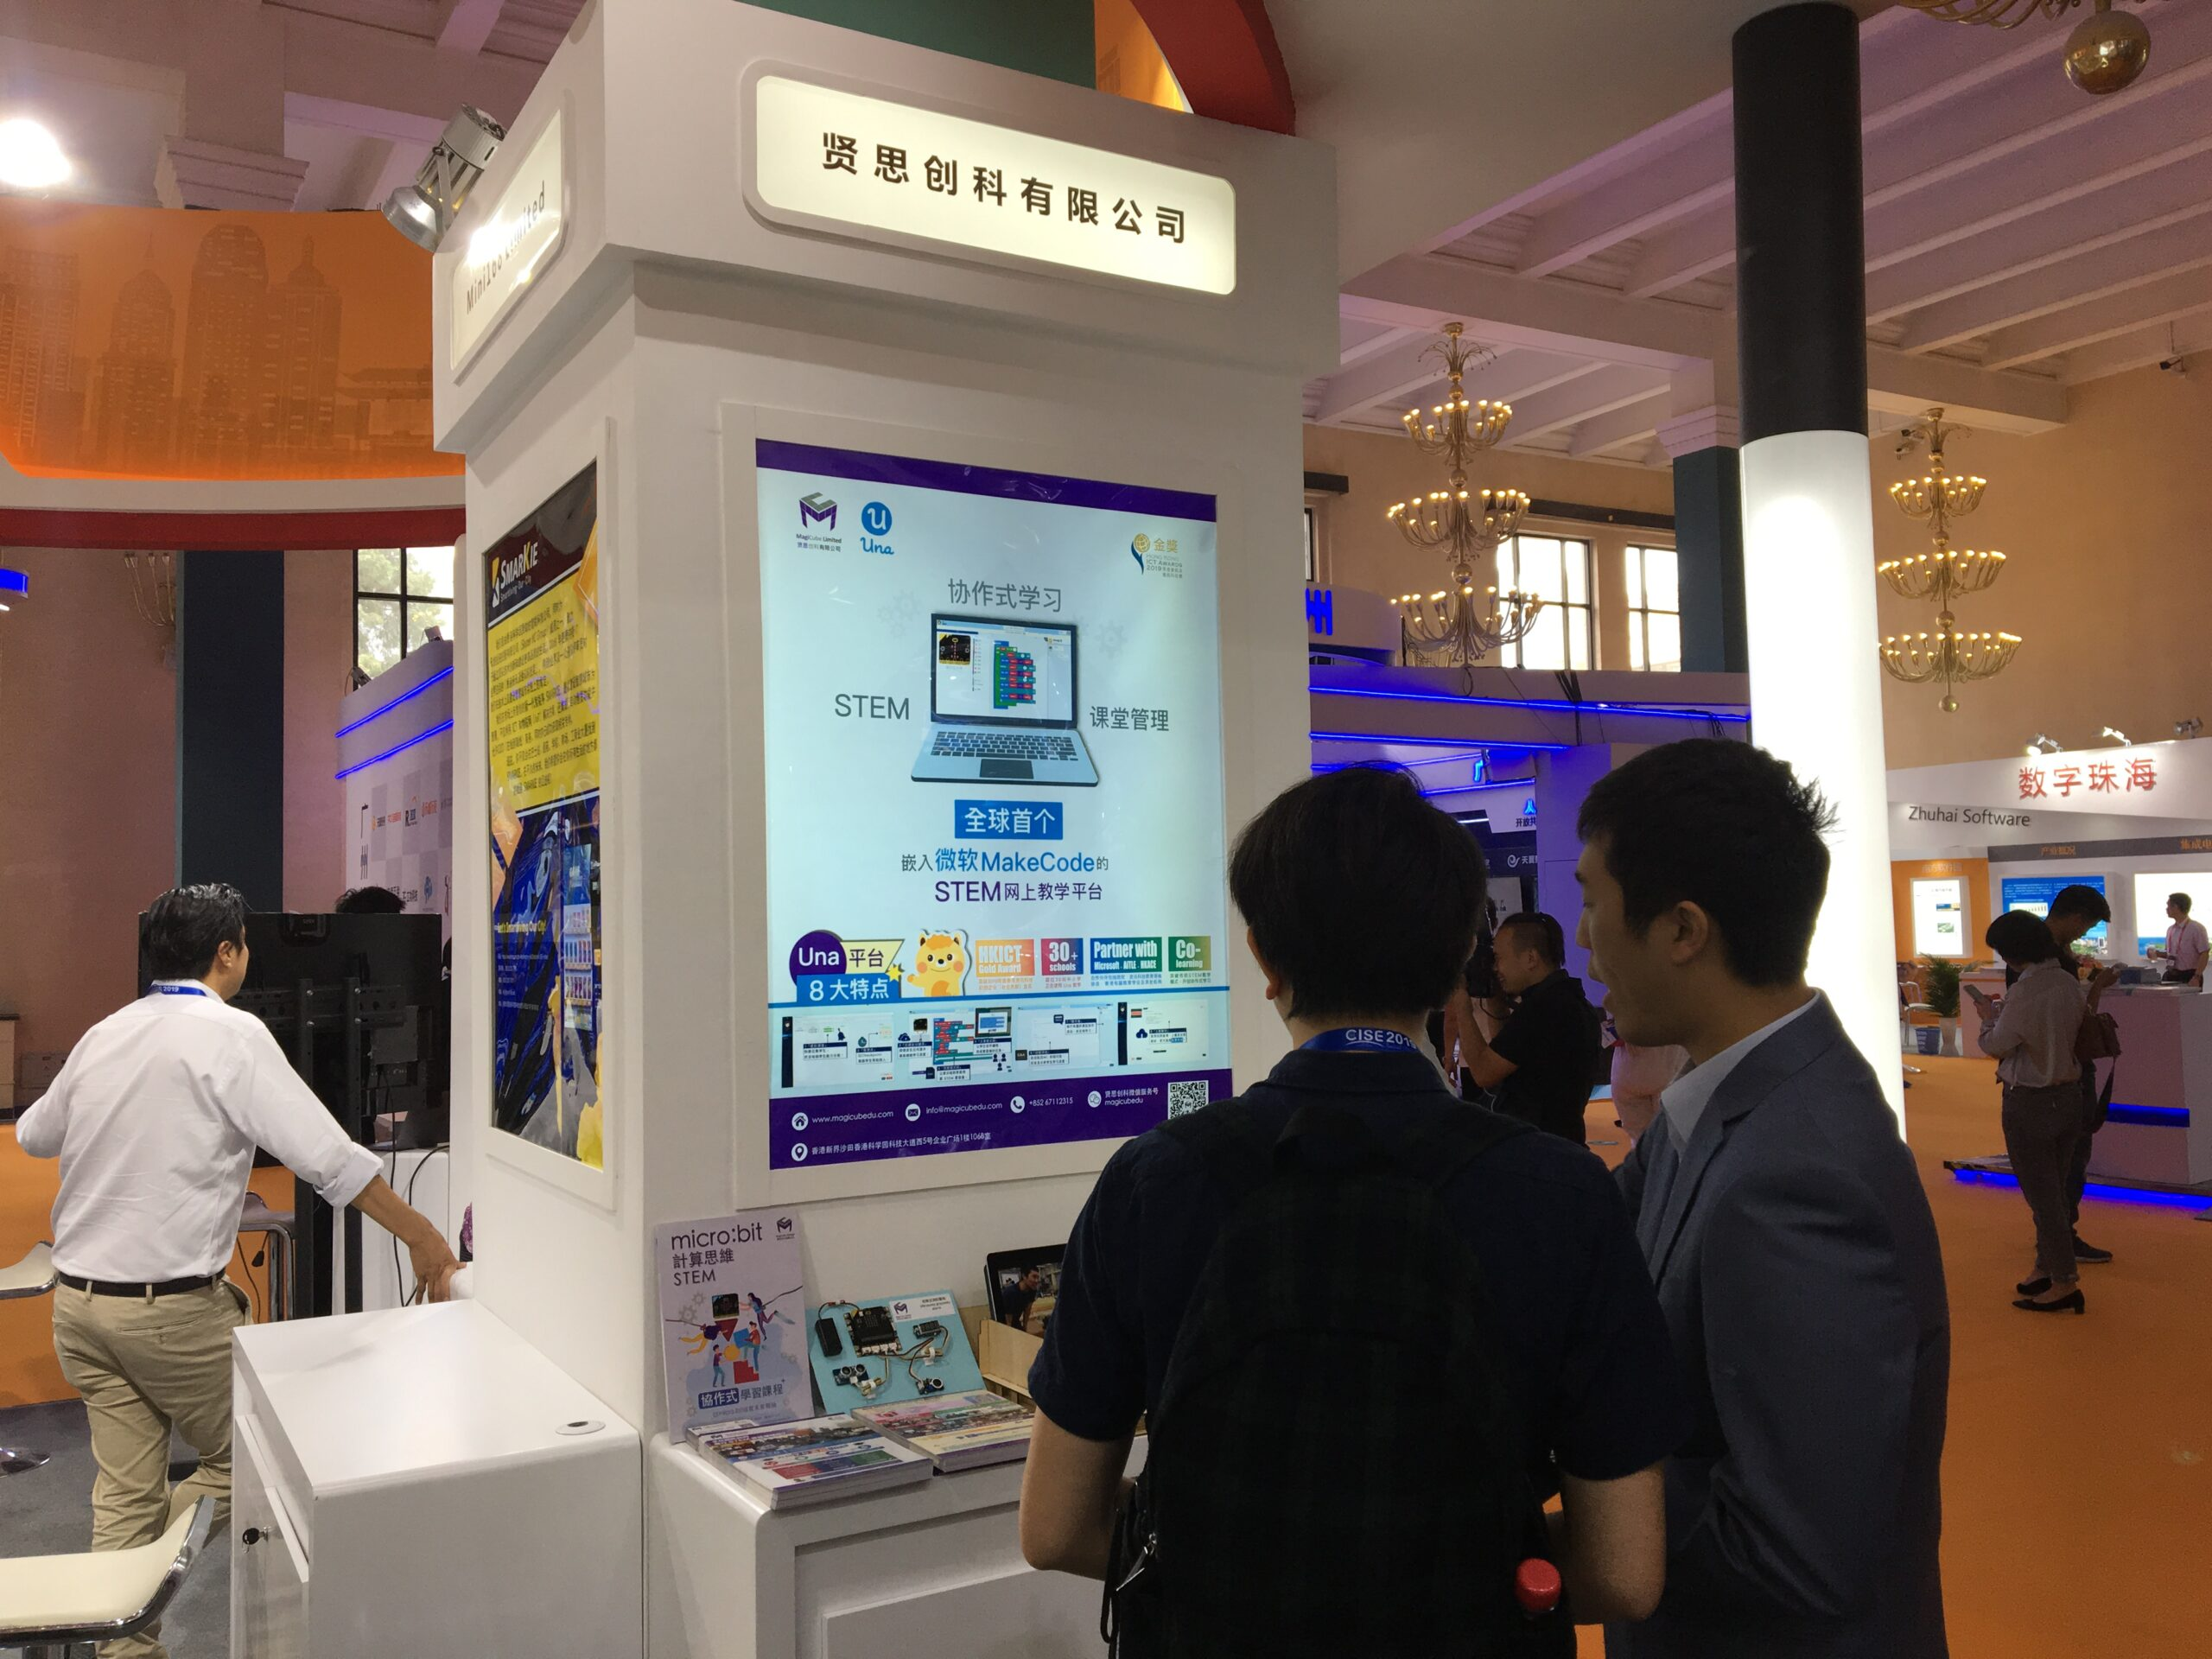 The 23rd China International Software Expo 4